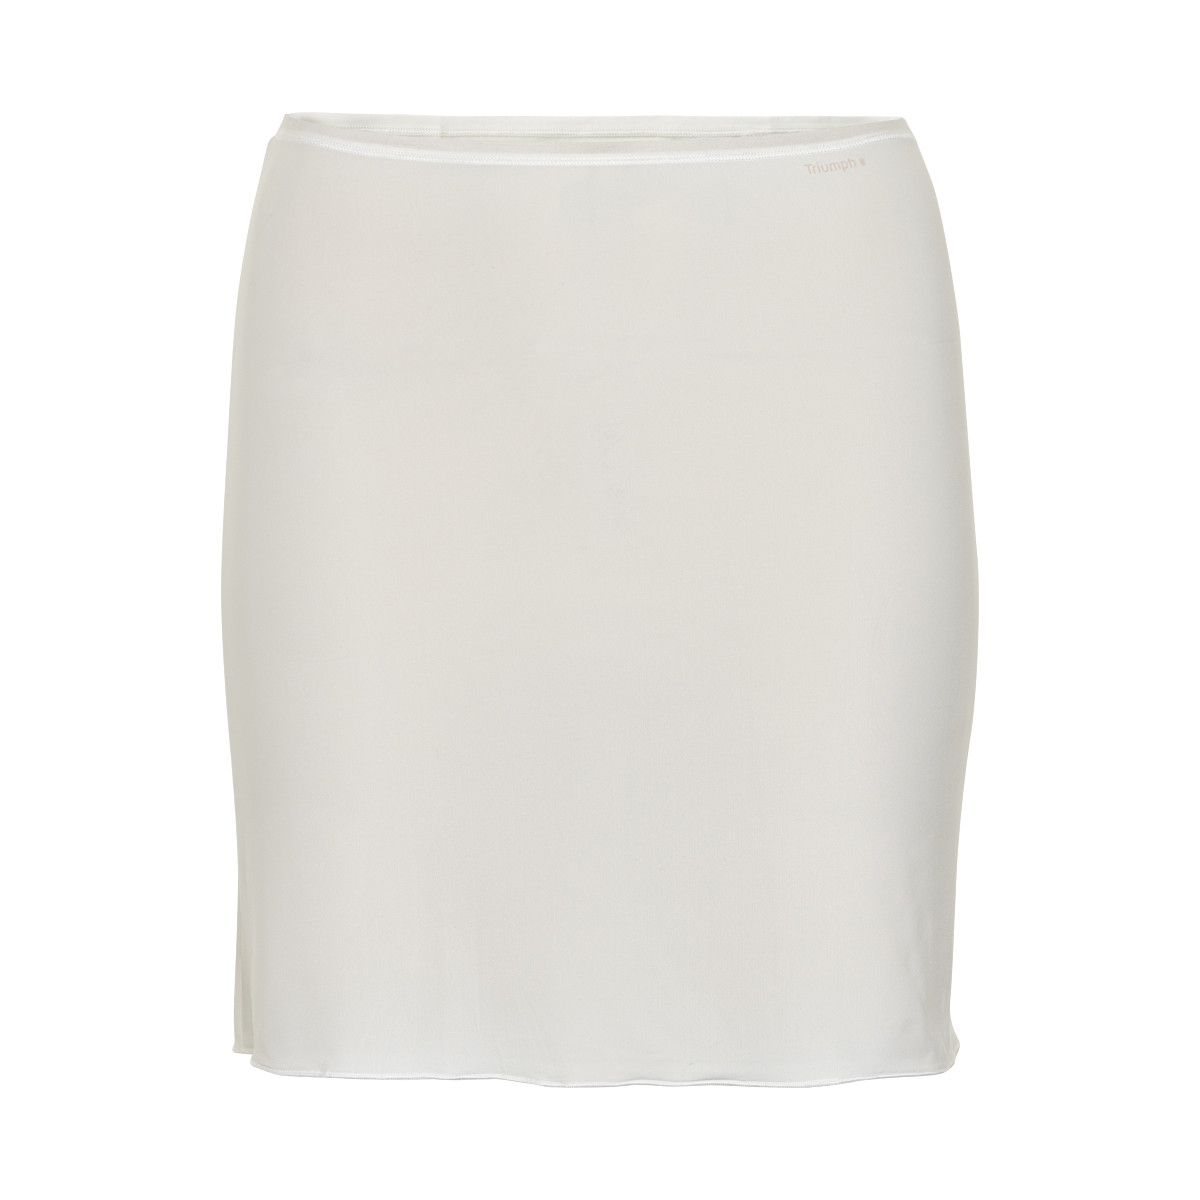 TRIUMPH BODY MAKE-UP SKIRT 01 10133685